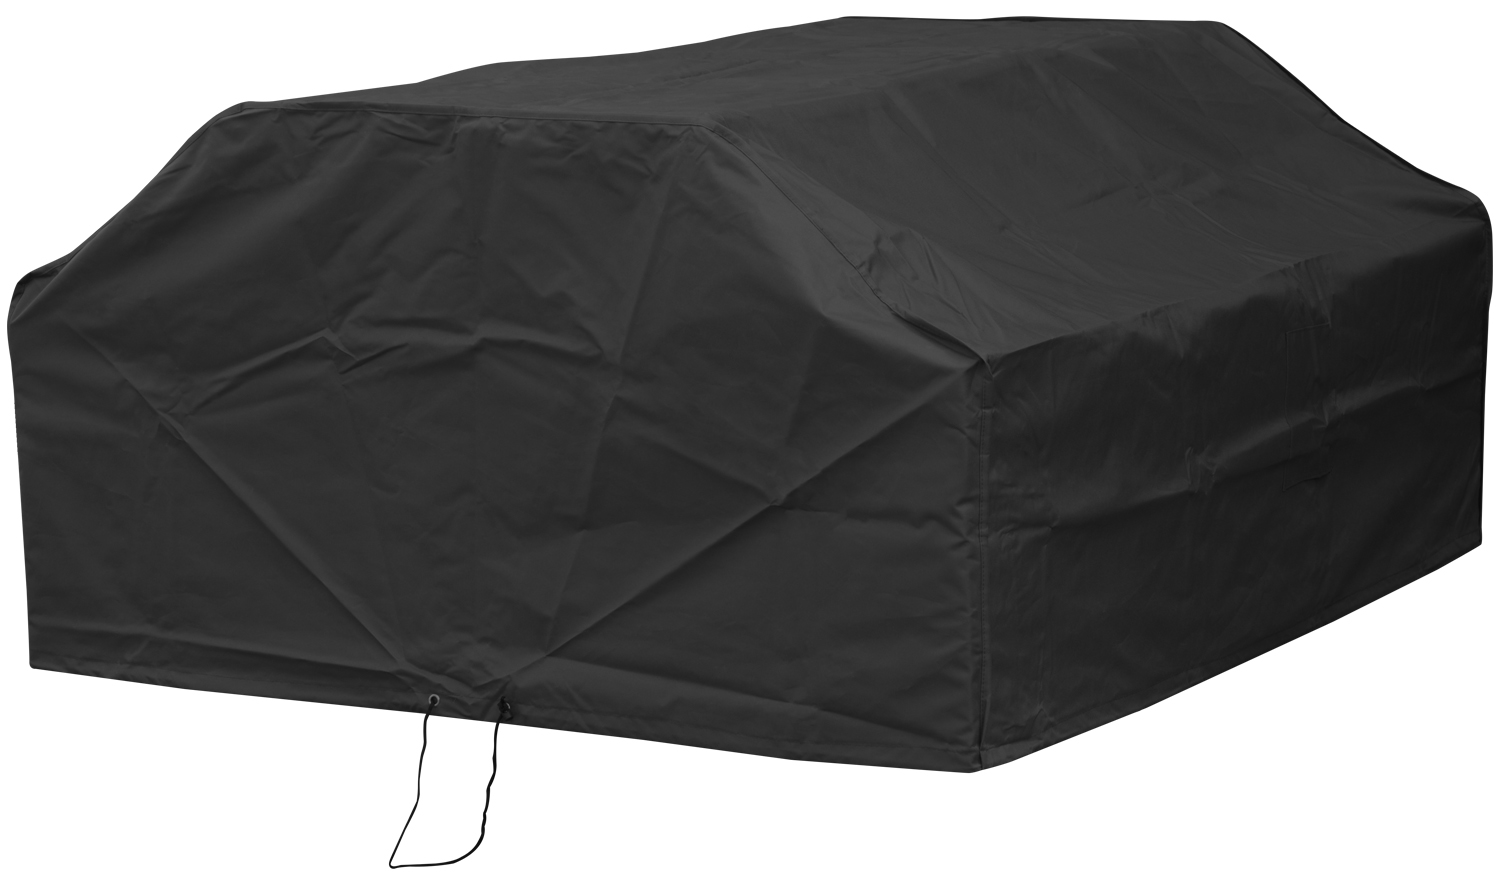 Woodside 8 Seater Square Picnic Table Cover Black Covers